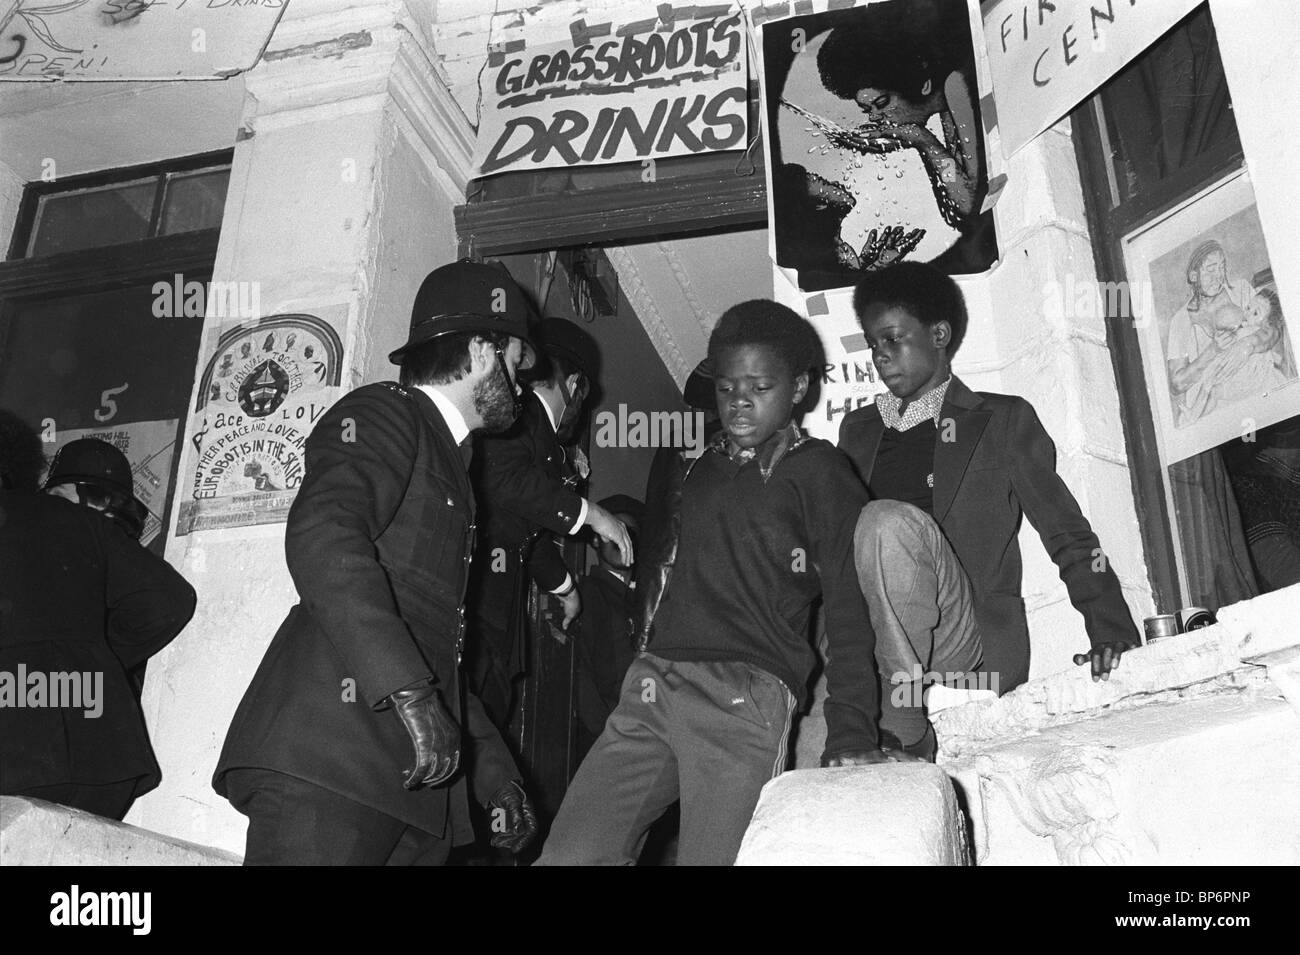 Police raid private house, All Saints Road during the Notting Hill Carnival London UK 1979. - Stock Image